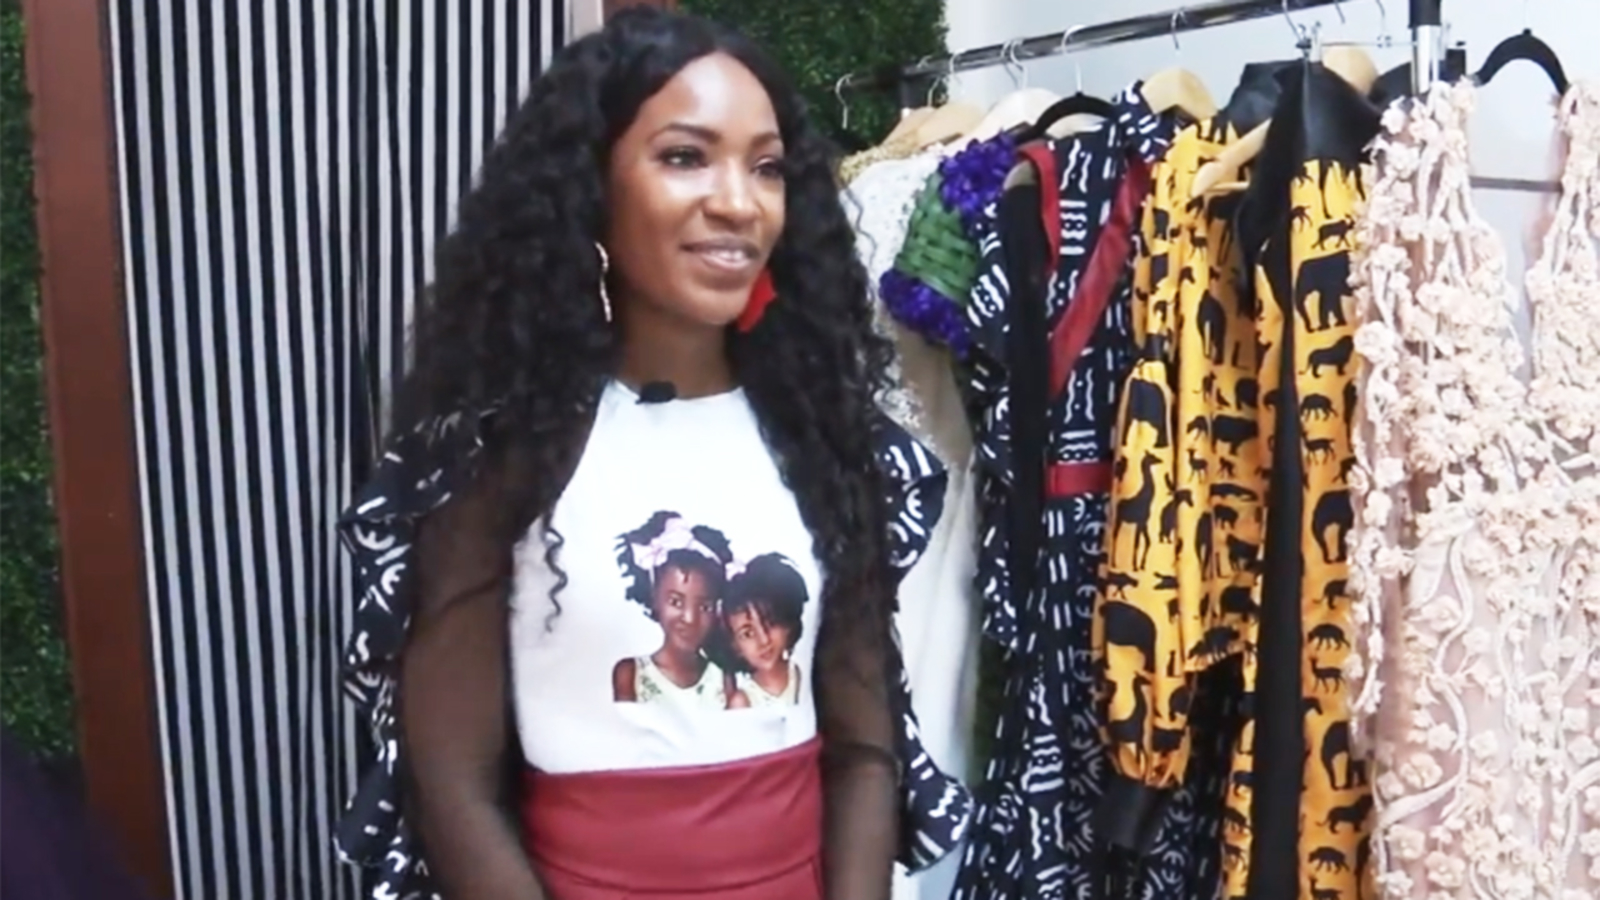 Texas Designer Chasity Sereal Is Making Her Mark In The Fashion World Abc13 Houston